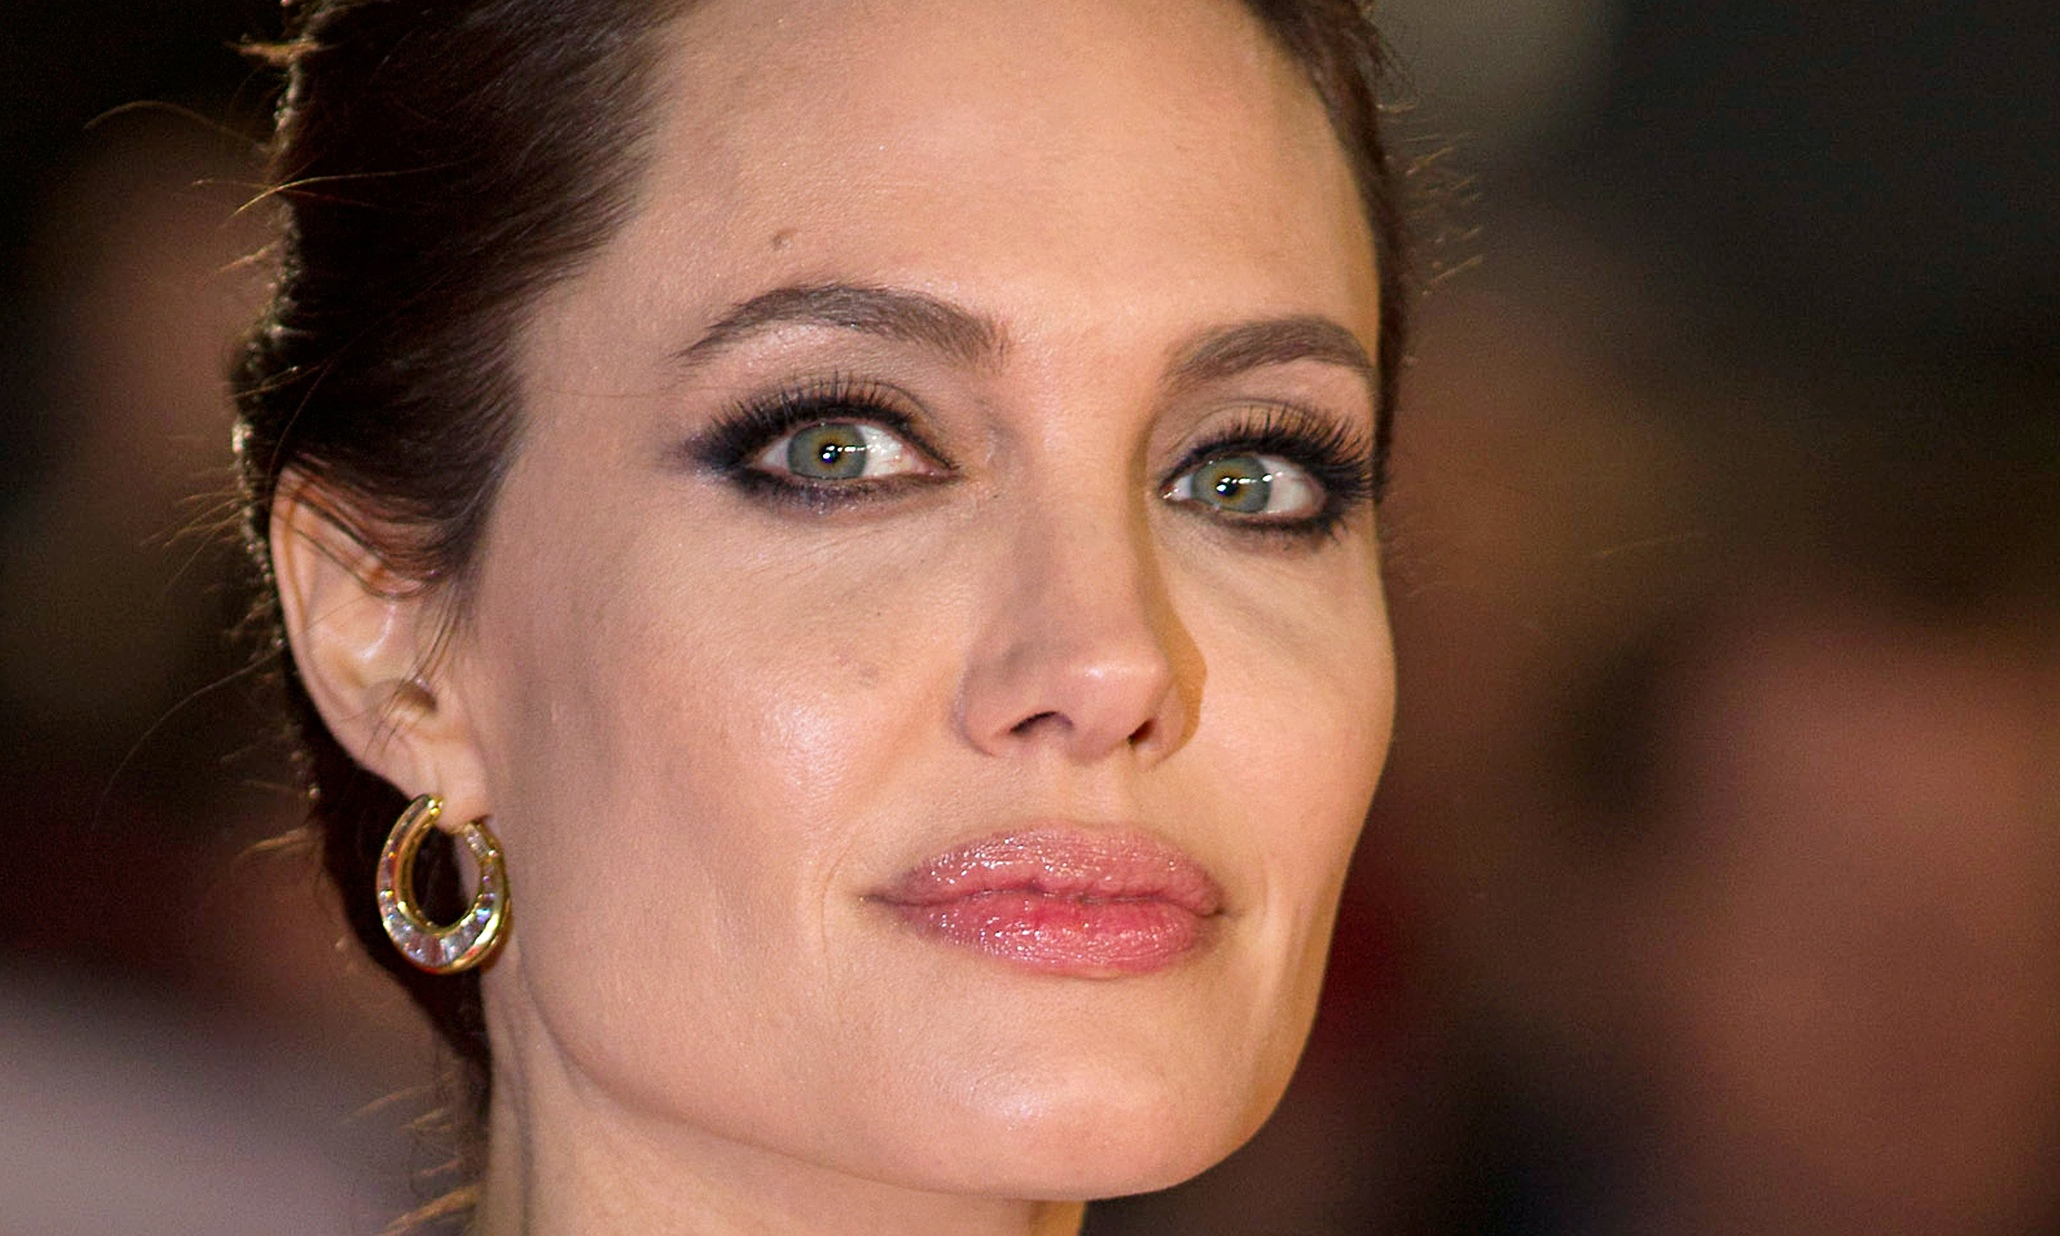 Angelina Jolie says the decision to deal with her cancer was simple ... Angelina Jolie